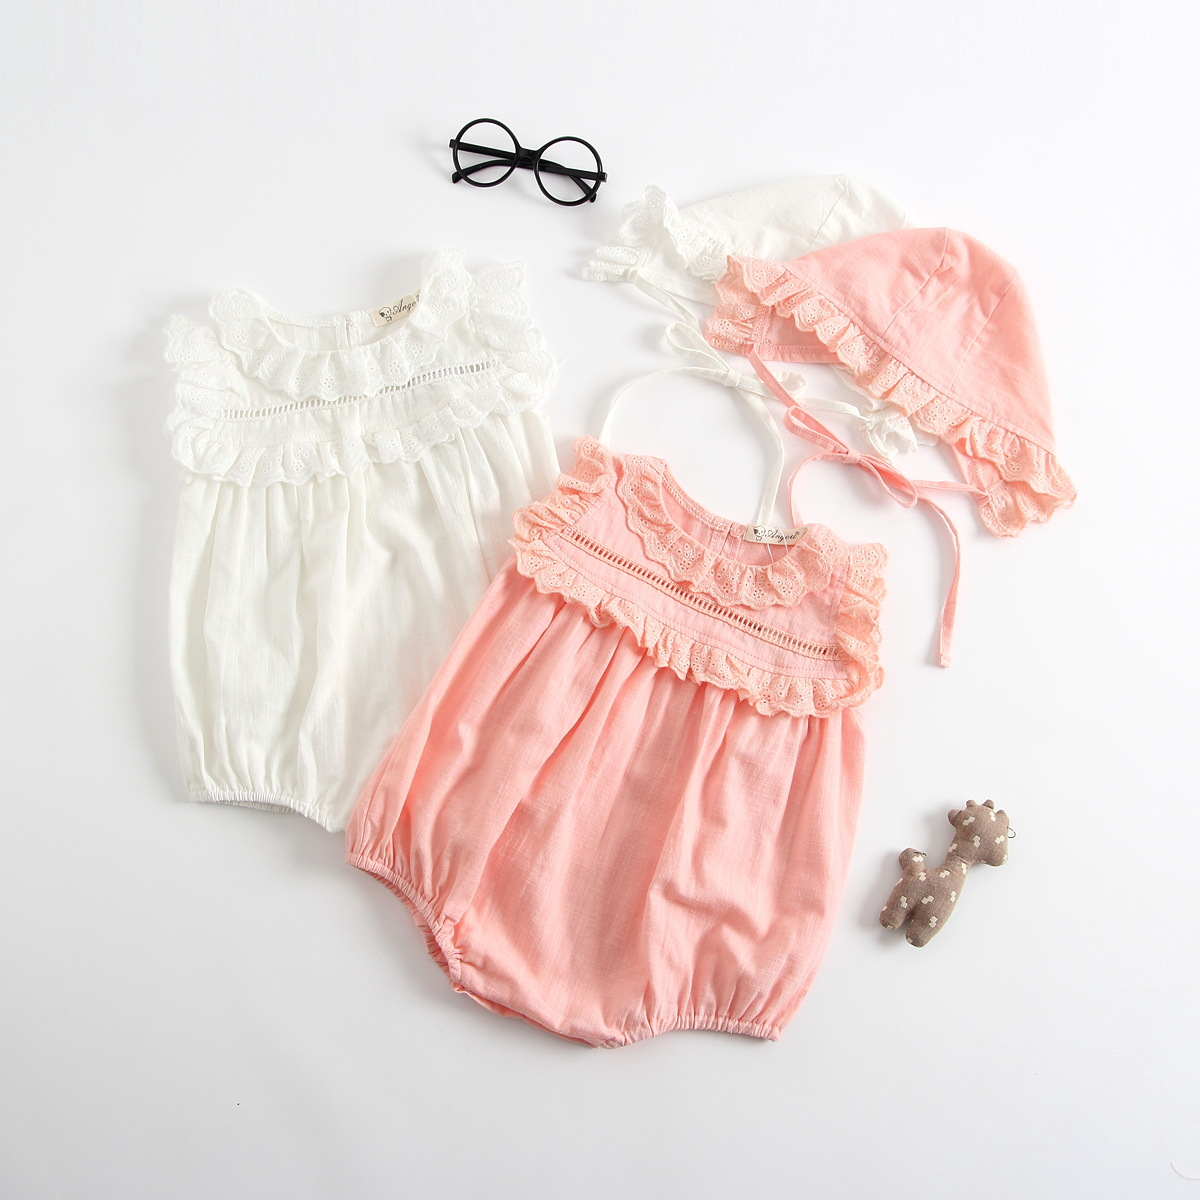 Baby girls rompers 2018 summer Newborn jumpsuit princess girls clothes sleeveless baby Rompers with hat roupas de bebe summer newborn baby rompers ruffle baby girl clothes princess baby girls romper with headband costume overalls baby clothes